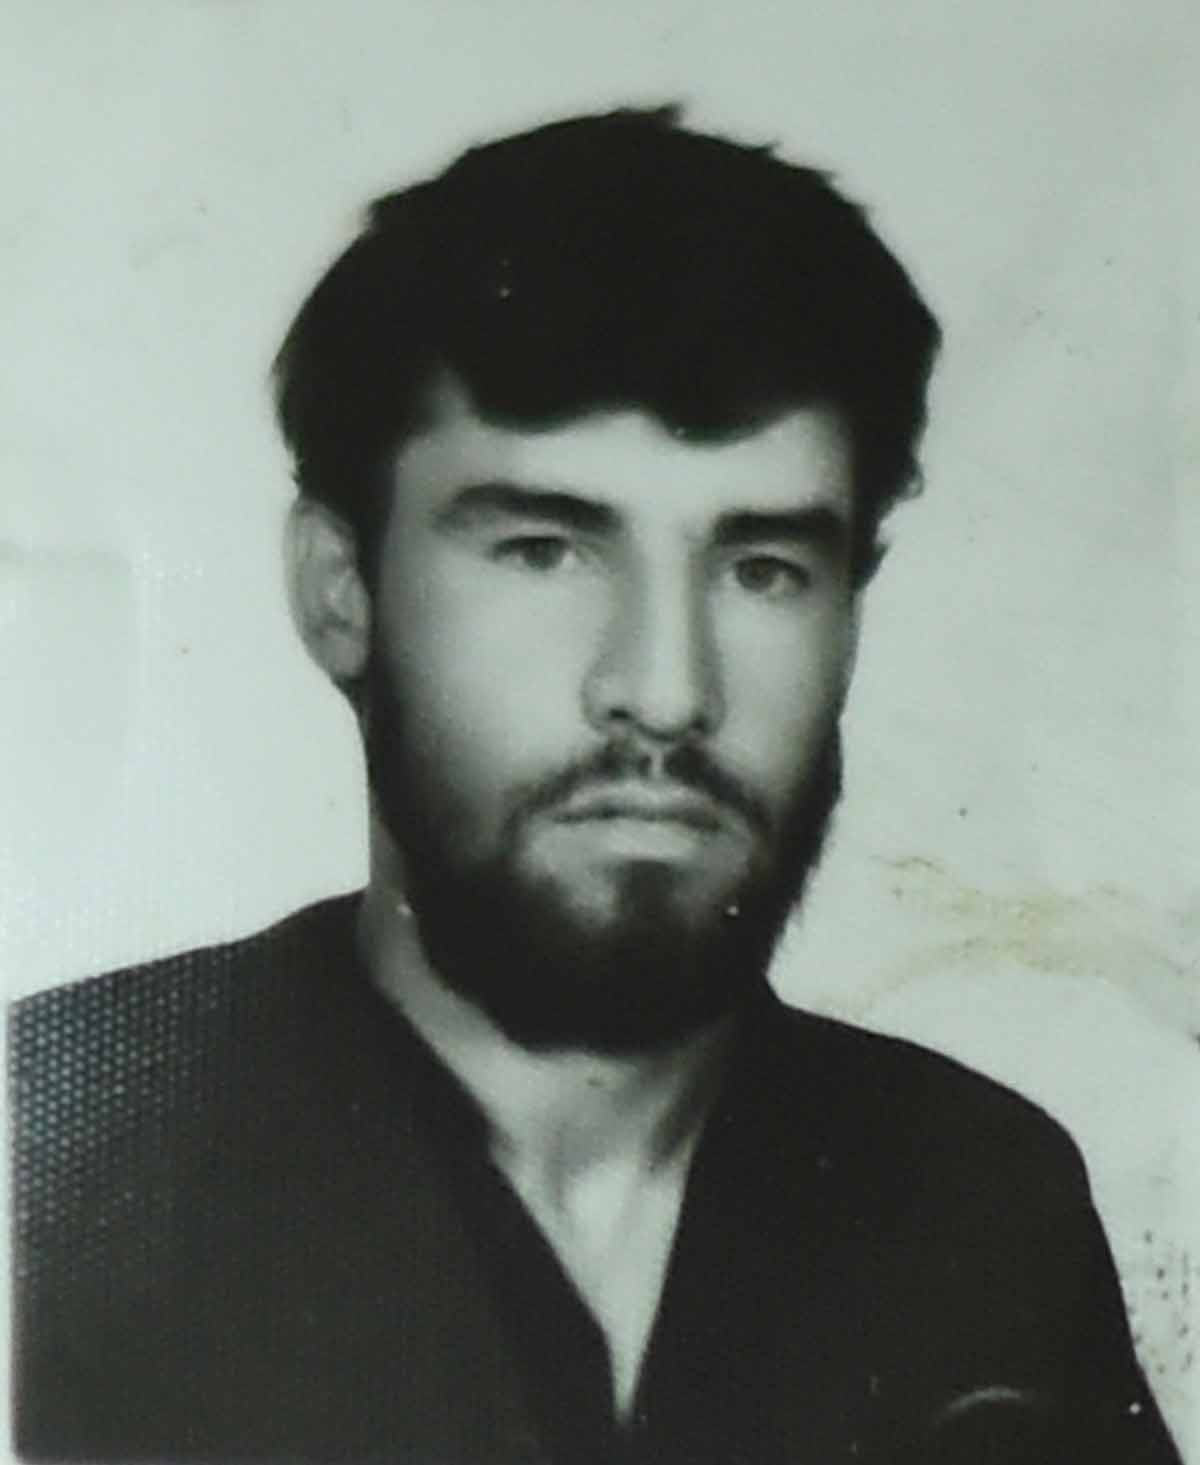 AFP correspondent Shah Marai during the time of Taliban rule, when beards were mandatory for men. (Photo courtesy of